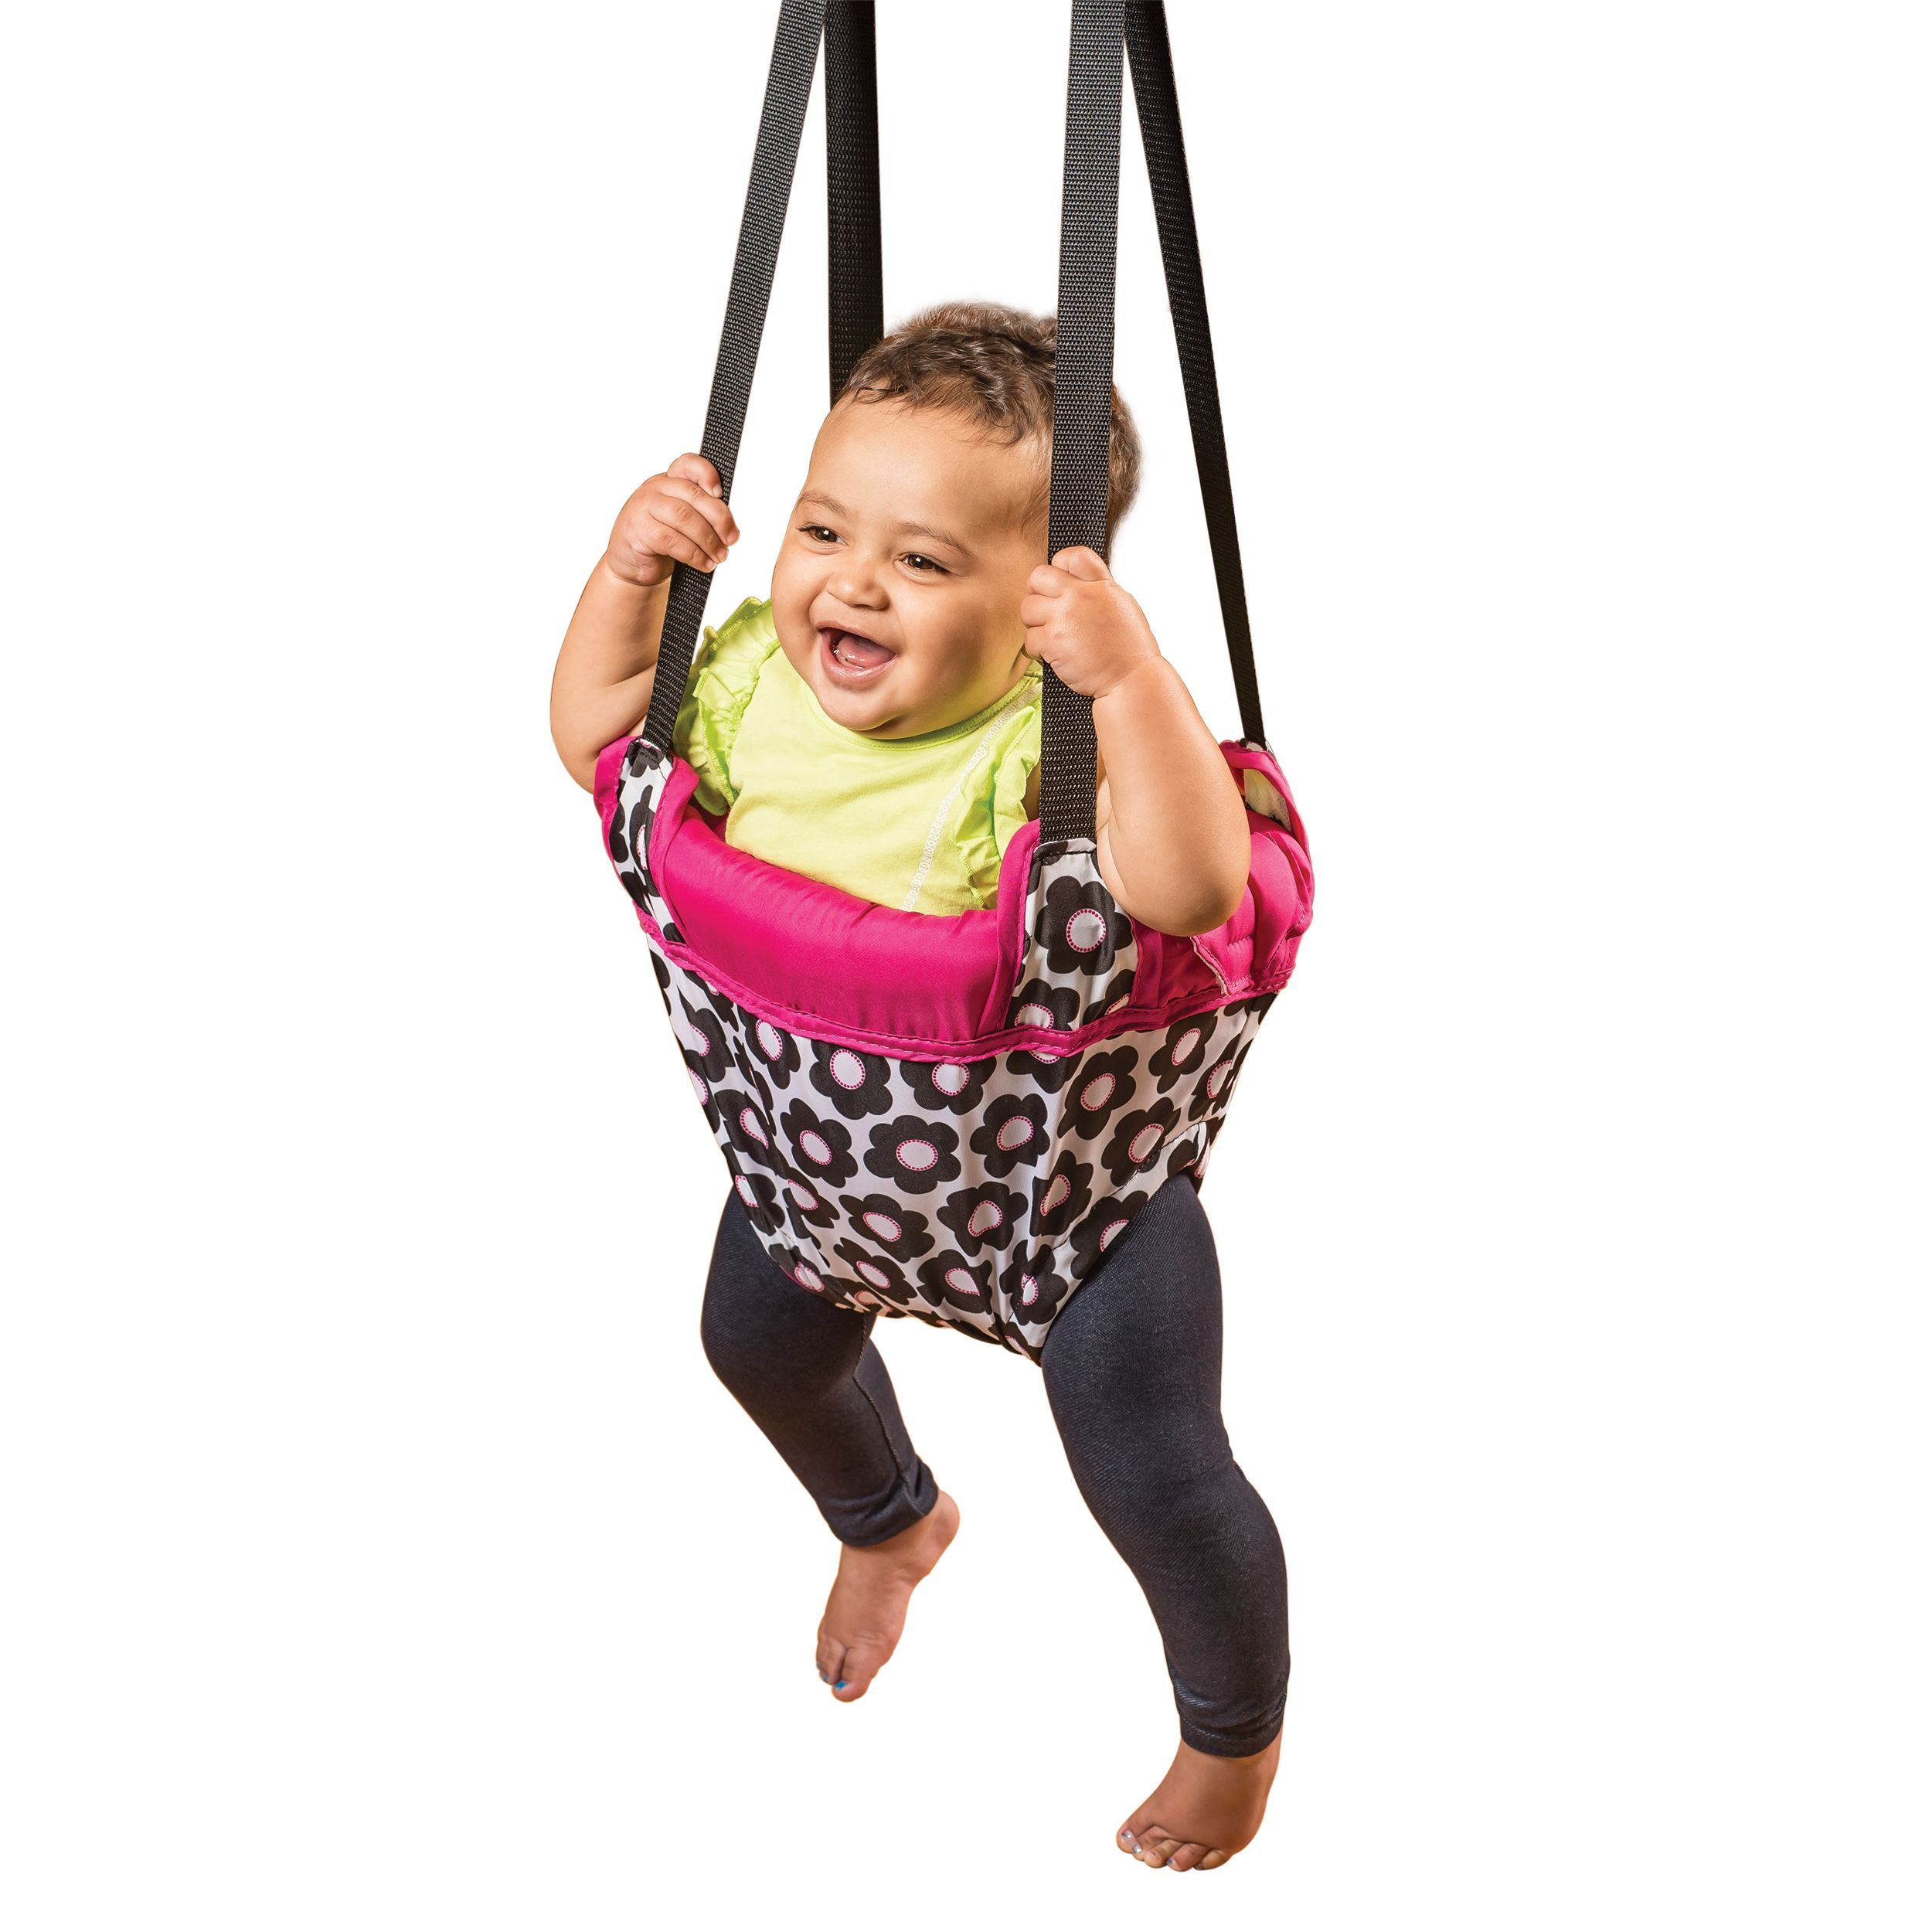 60f48b0262c7 Entertainment and Exercise for Baby This doorway jumper stimulates ...